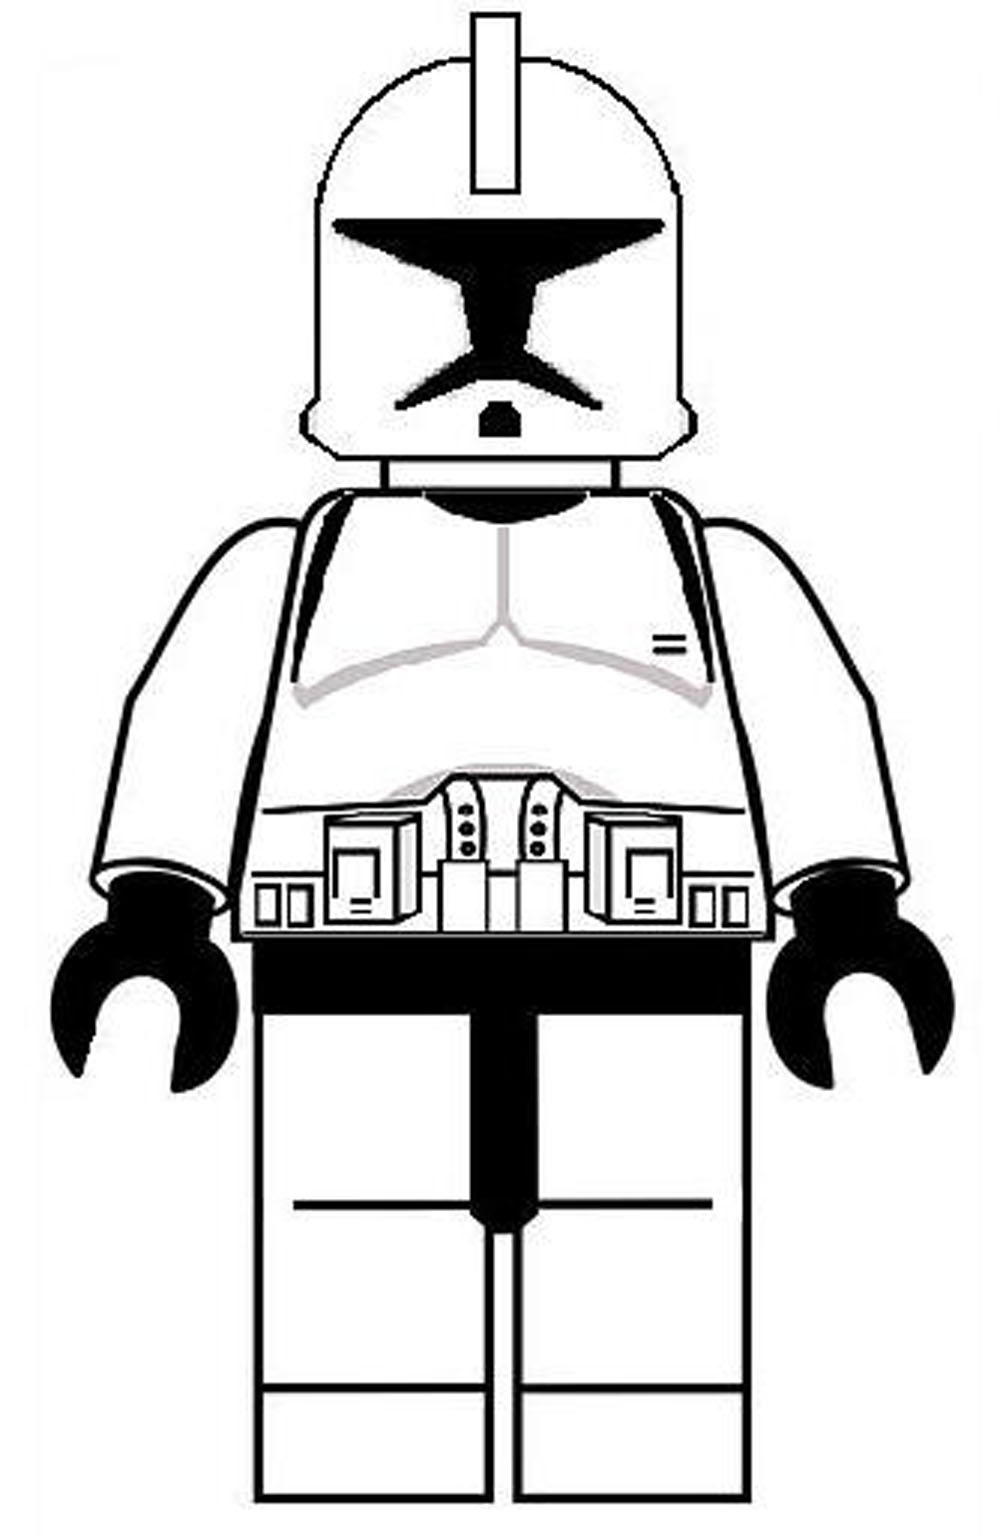 lego drawings to colour lego coloring pages legomangif 24593310 pixels to lego drawings colour